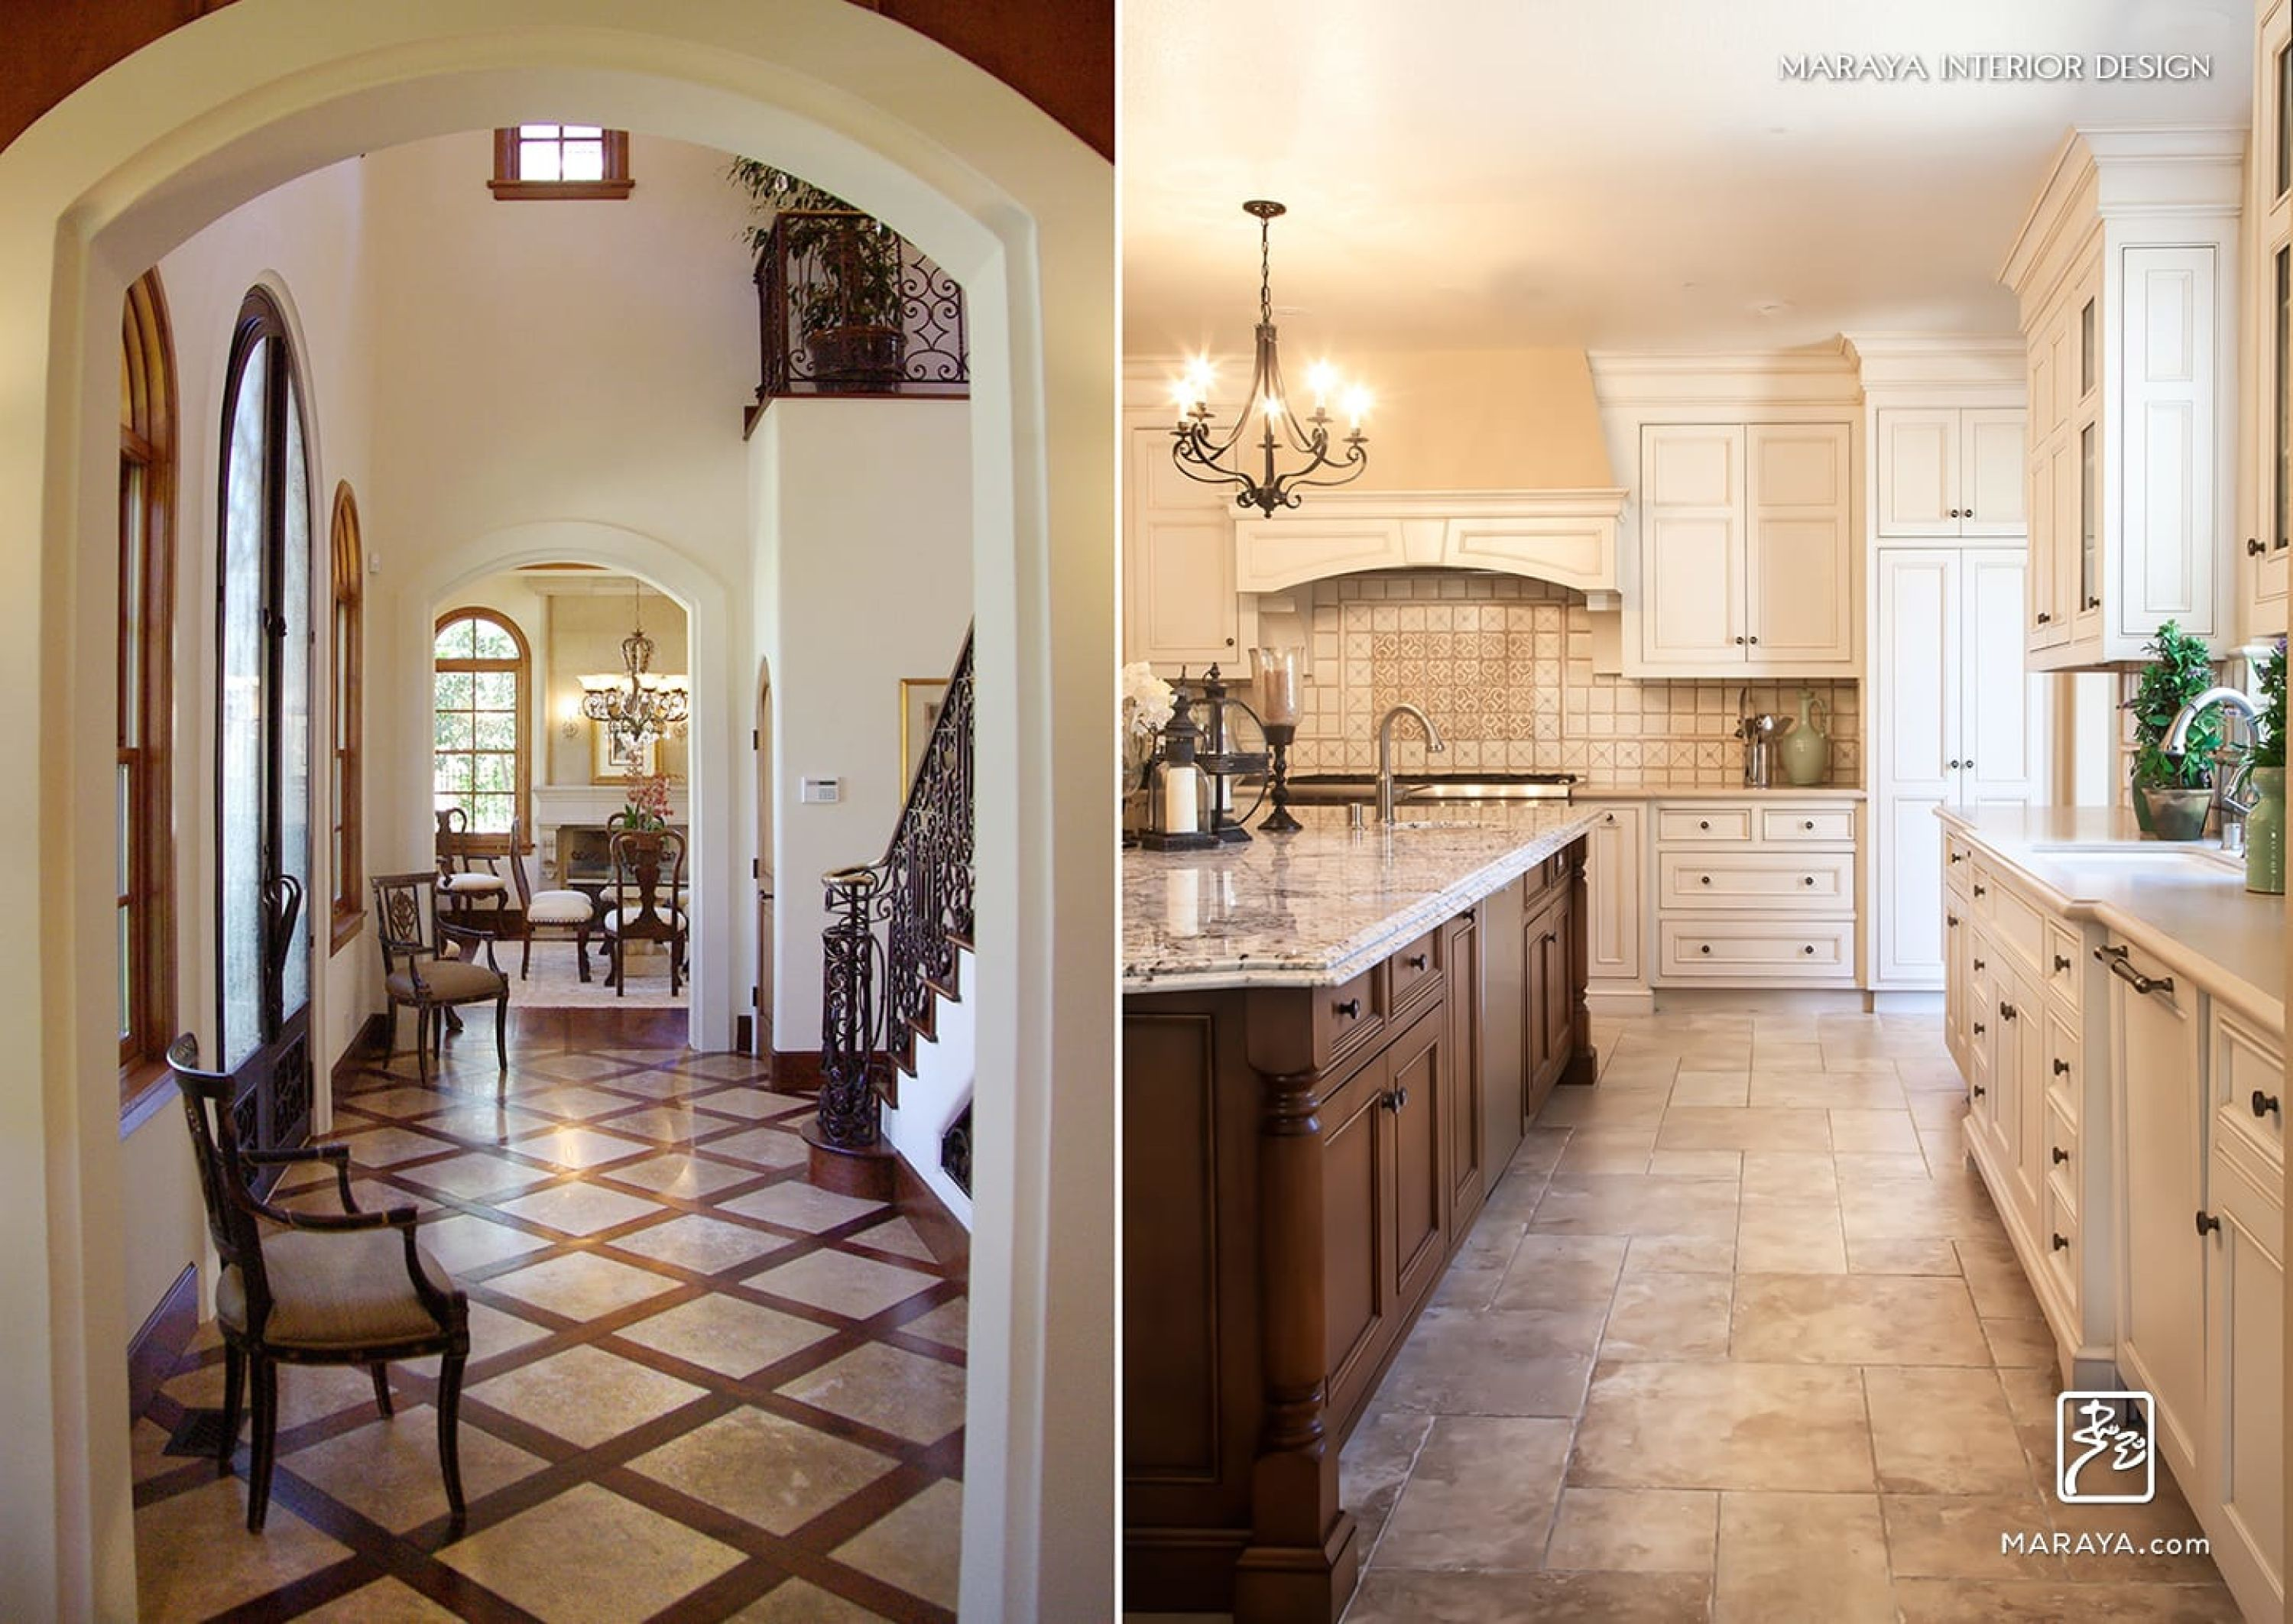 Portfolio Residential Traditional White Kitchen Cabinets Spanish Kitchen Interior Design